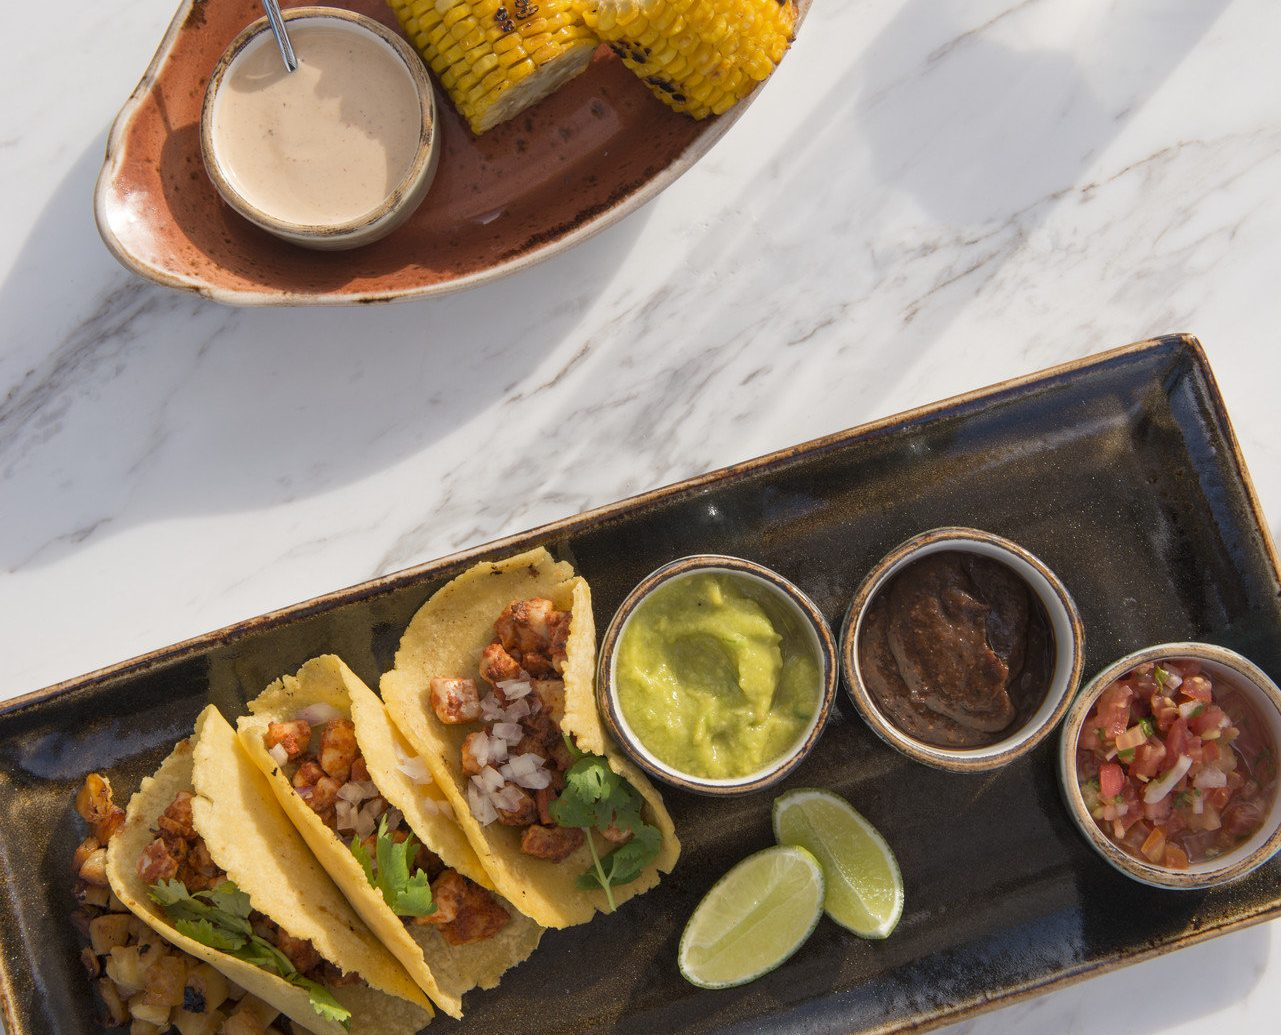 Tacos Are Served At Amanera